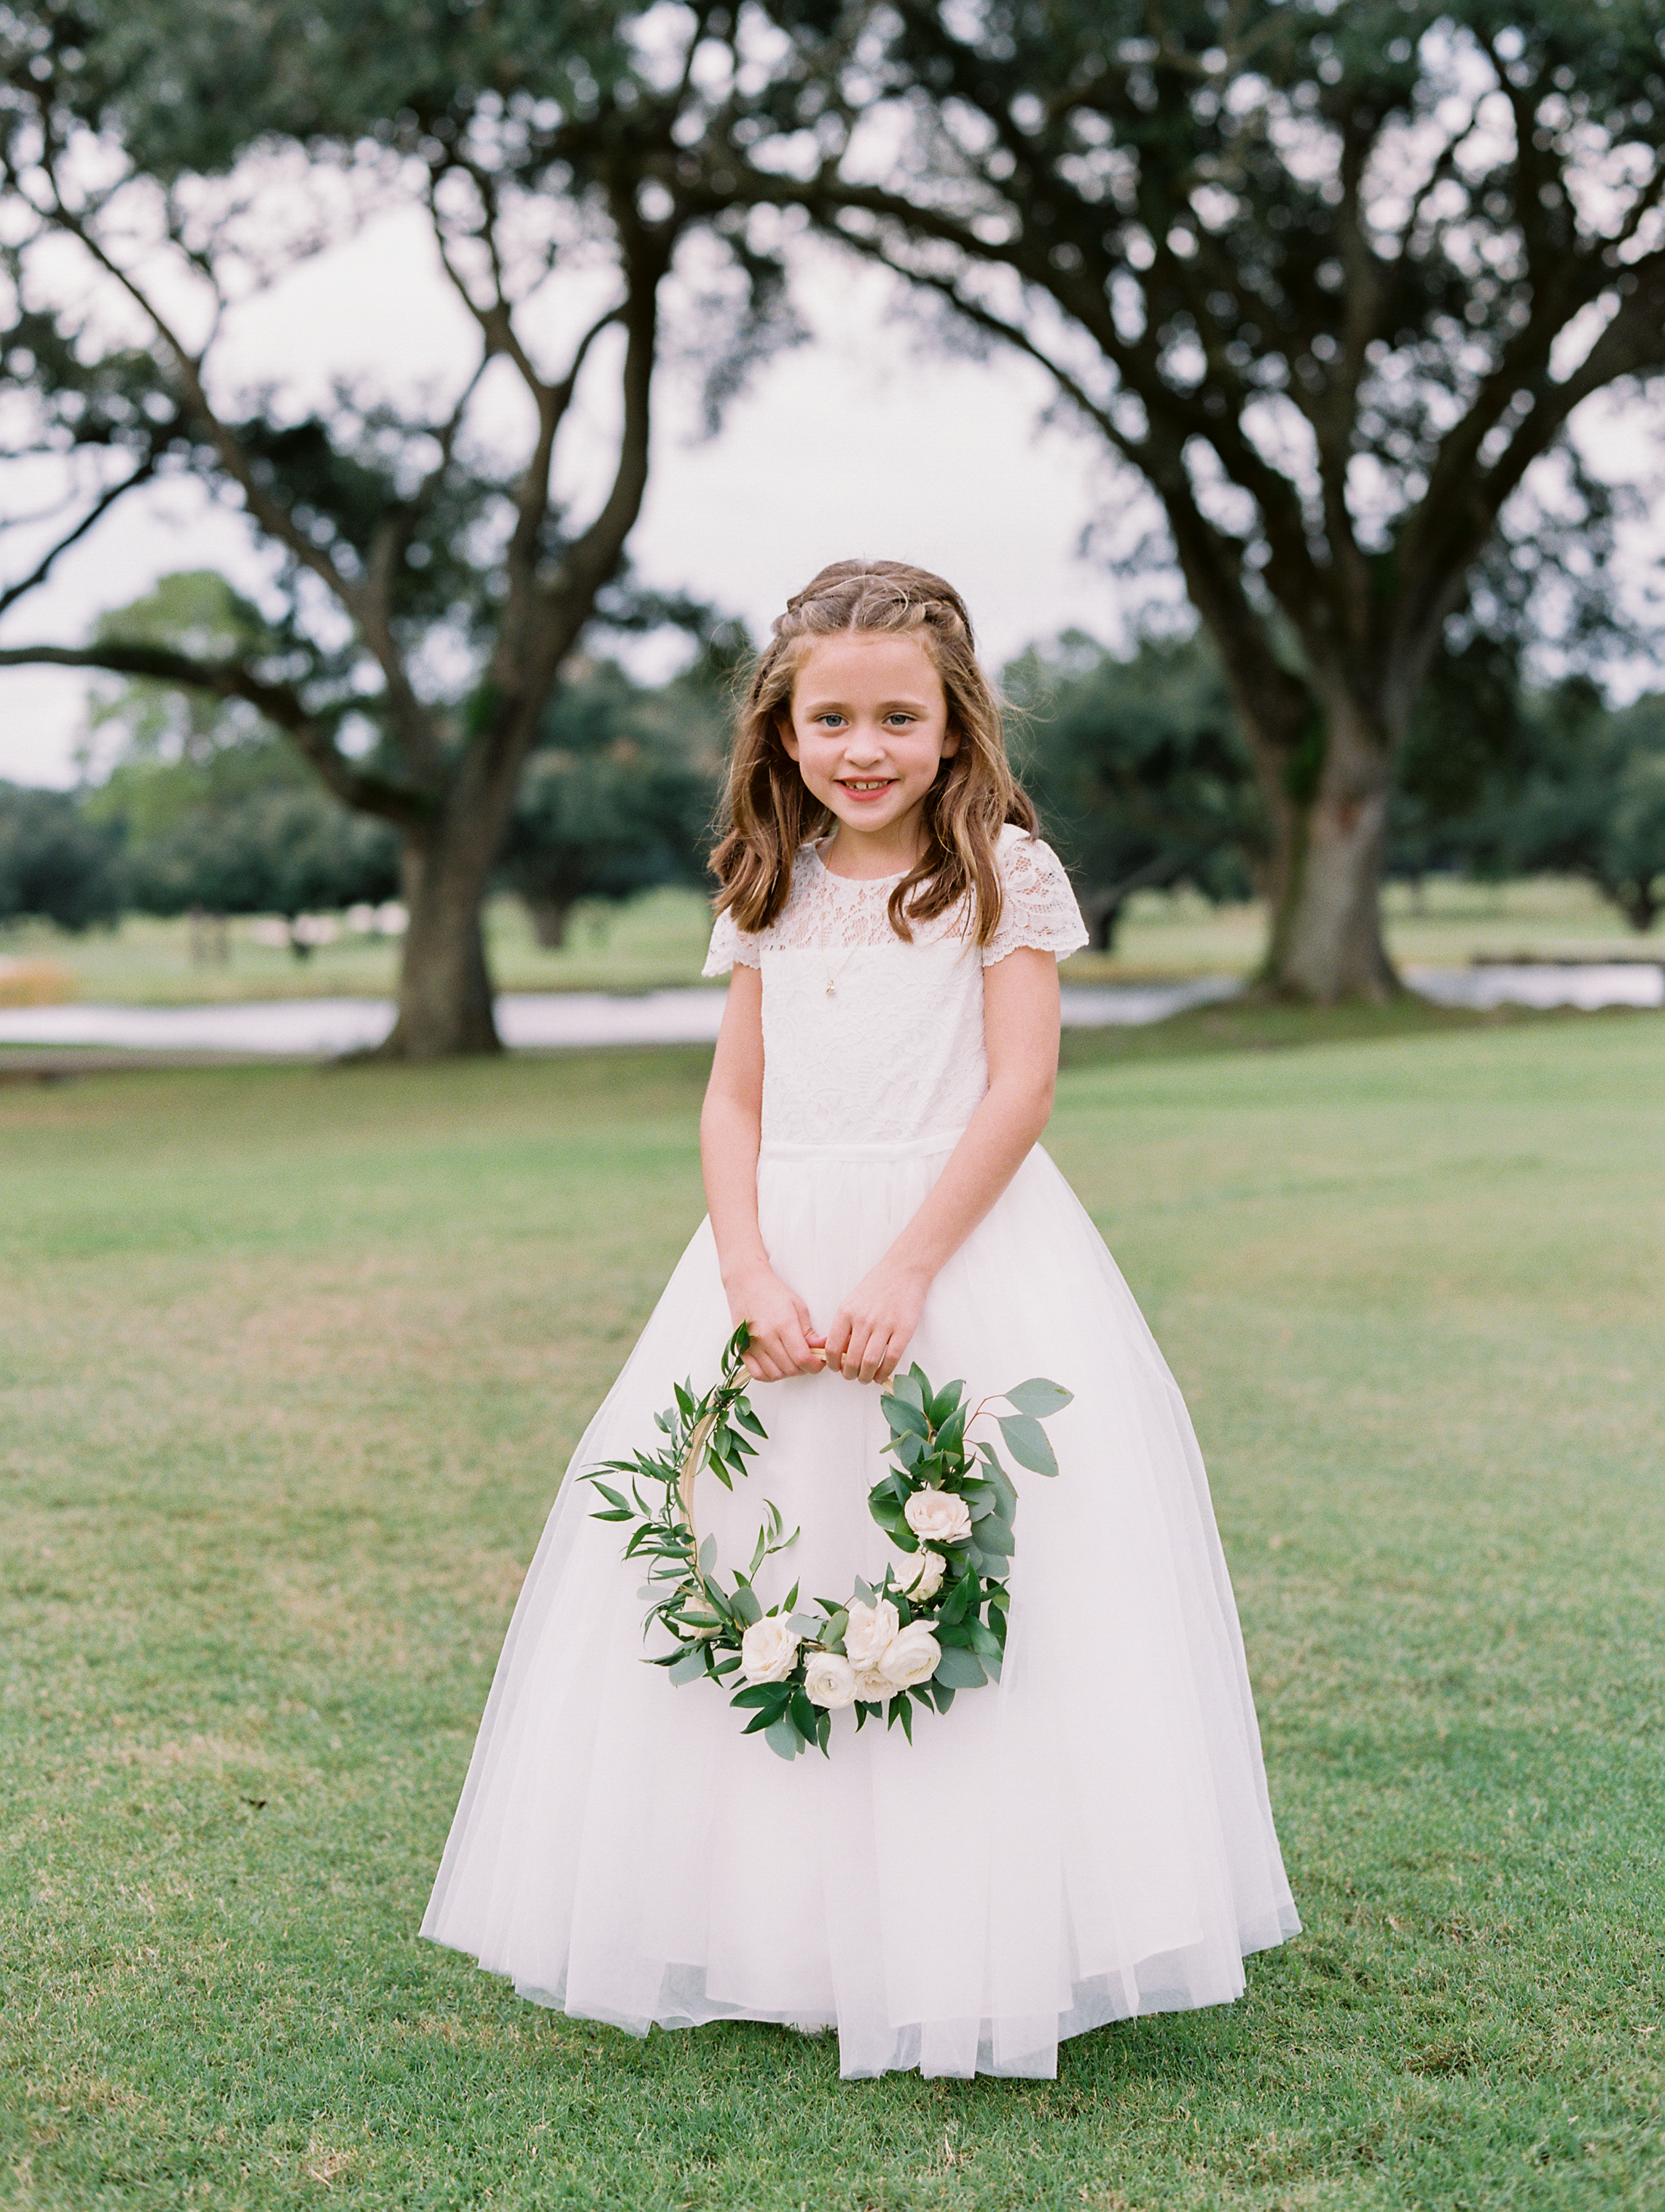 Southern Fete, Southern Wedding, Flower girl, Flowers by Rodney, Sarah Beth Photography